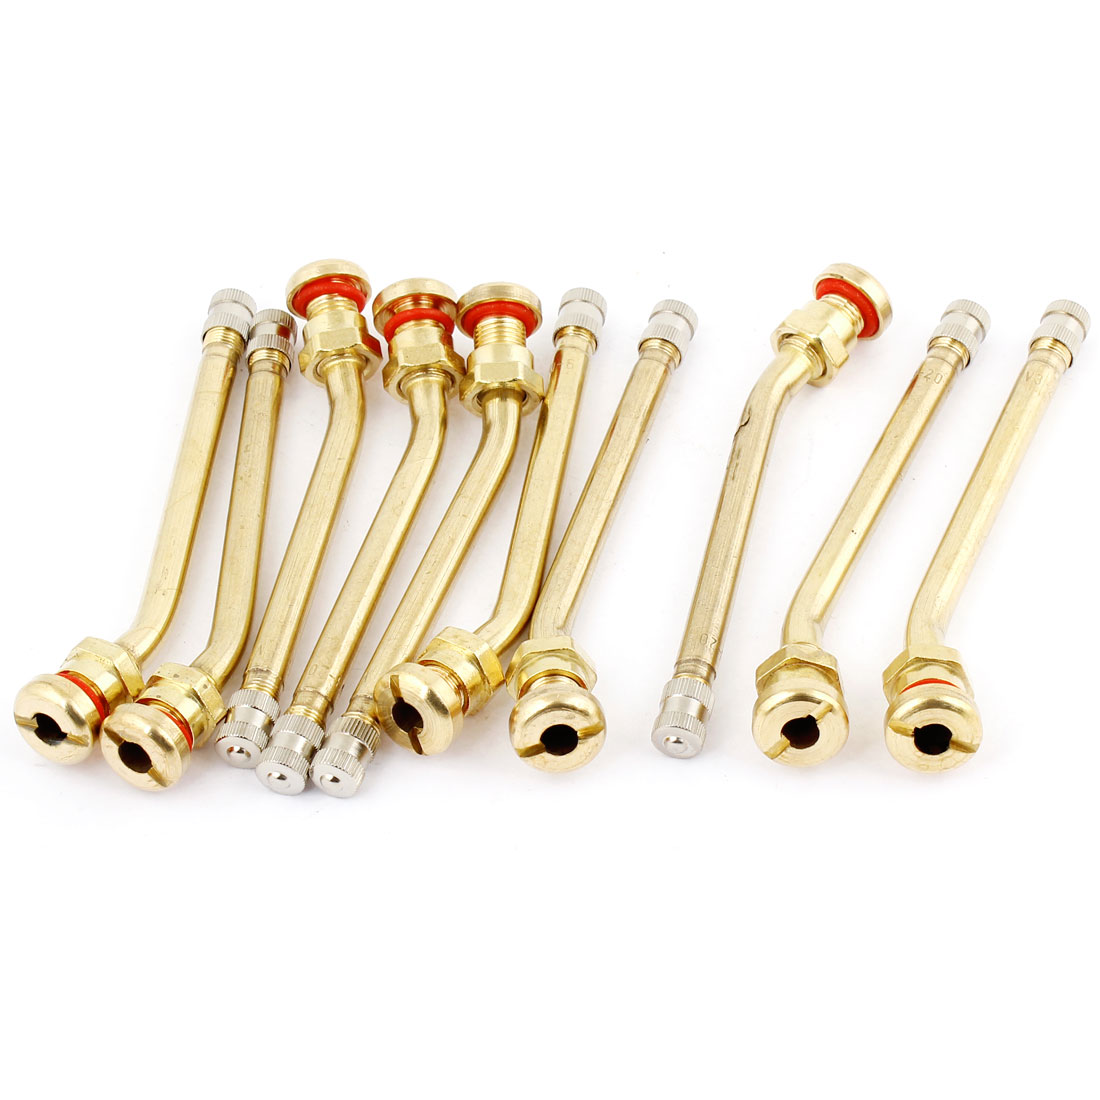 Car Truck Tire Pressure Monitoring Sensor Valve Stem Gold Tone 10 Pcs